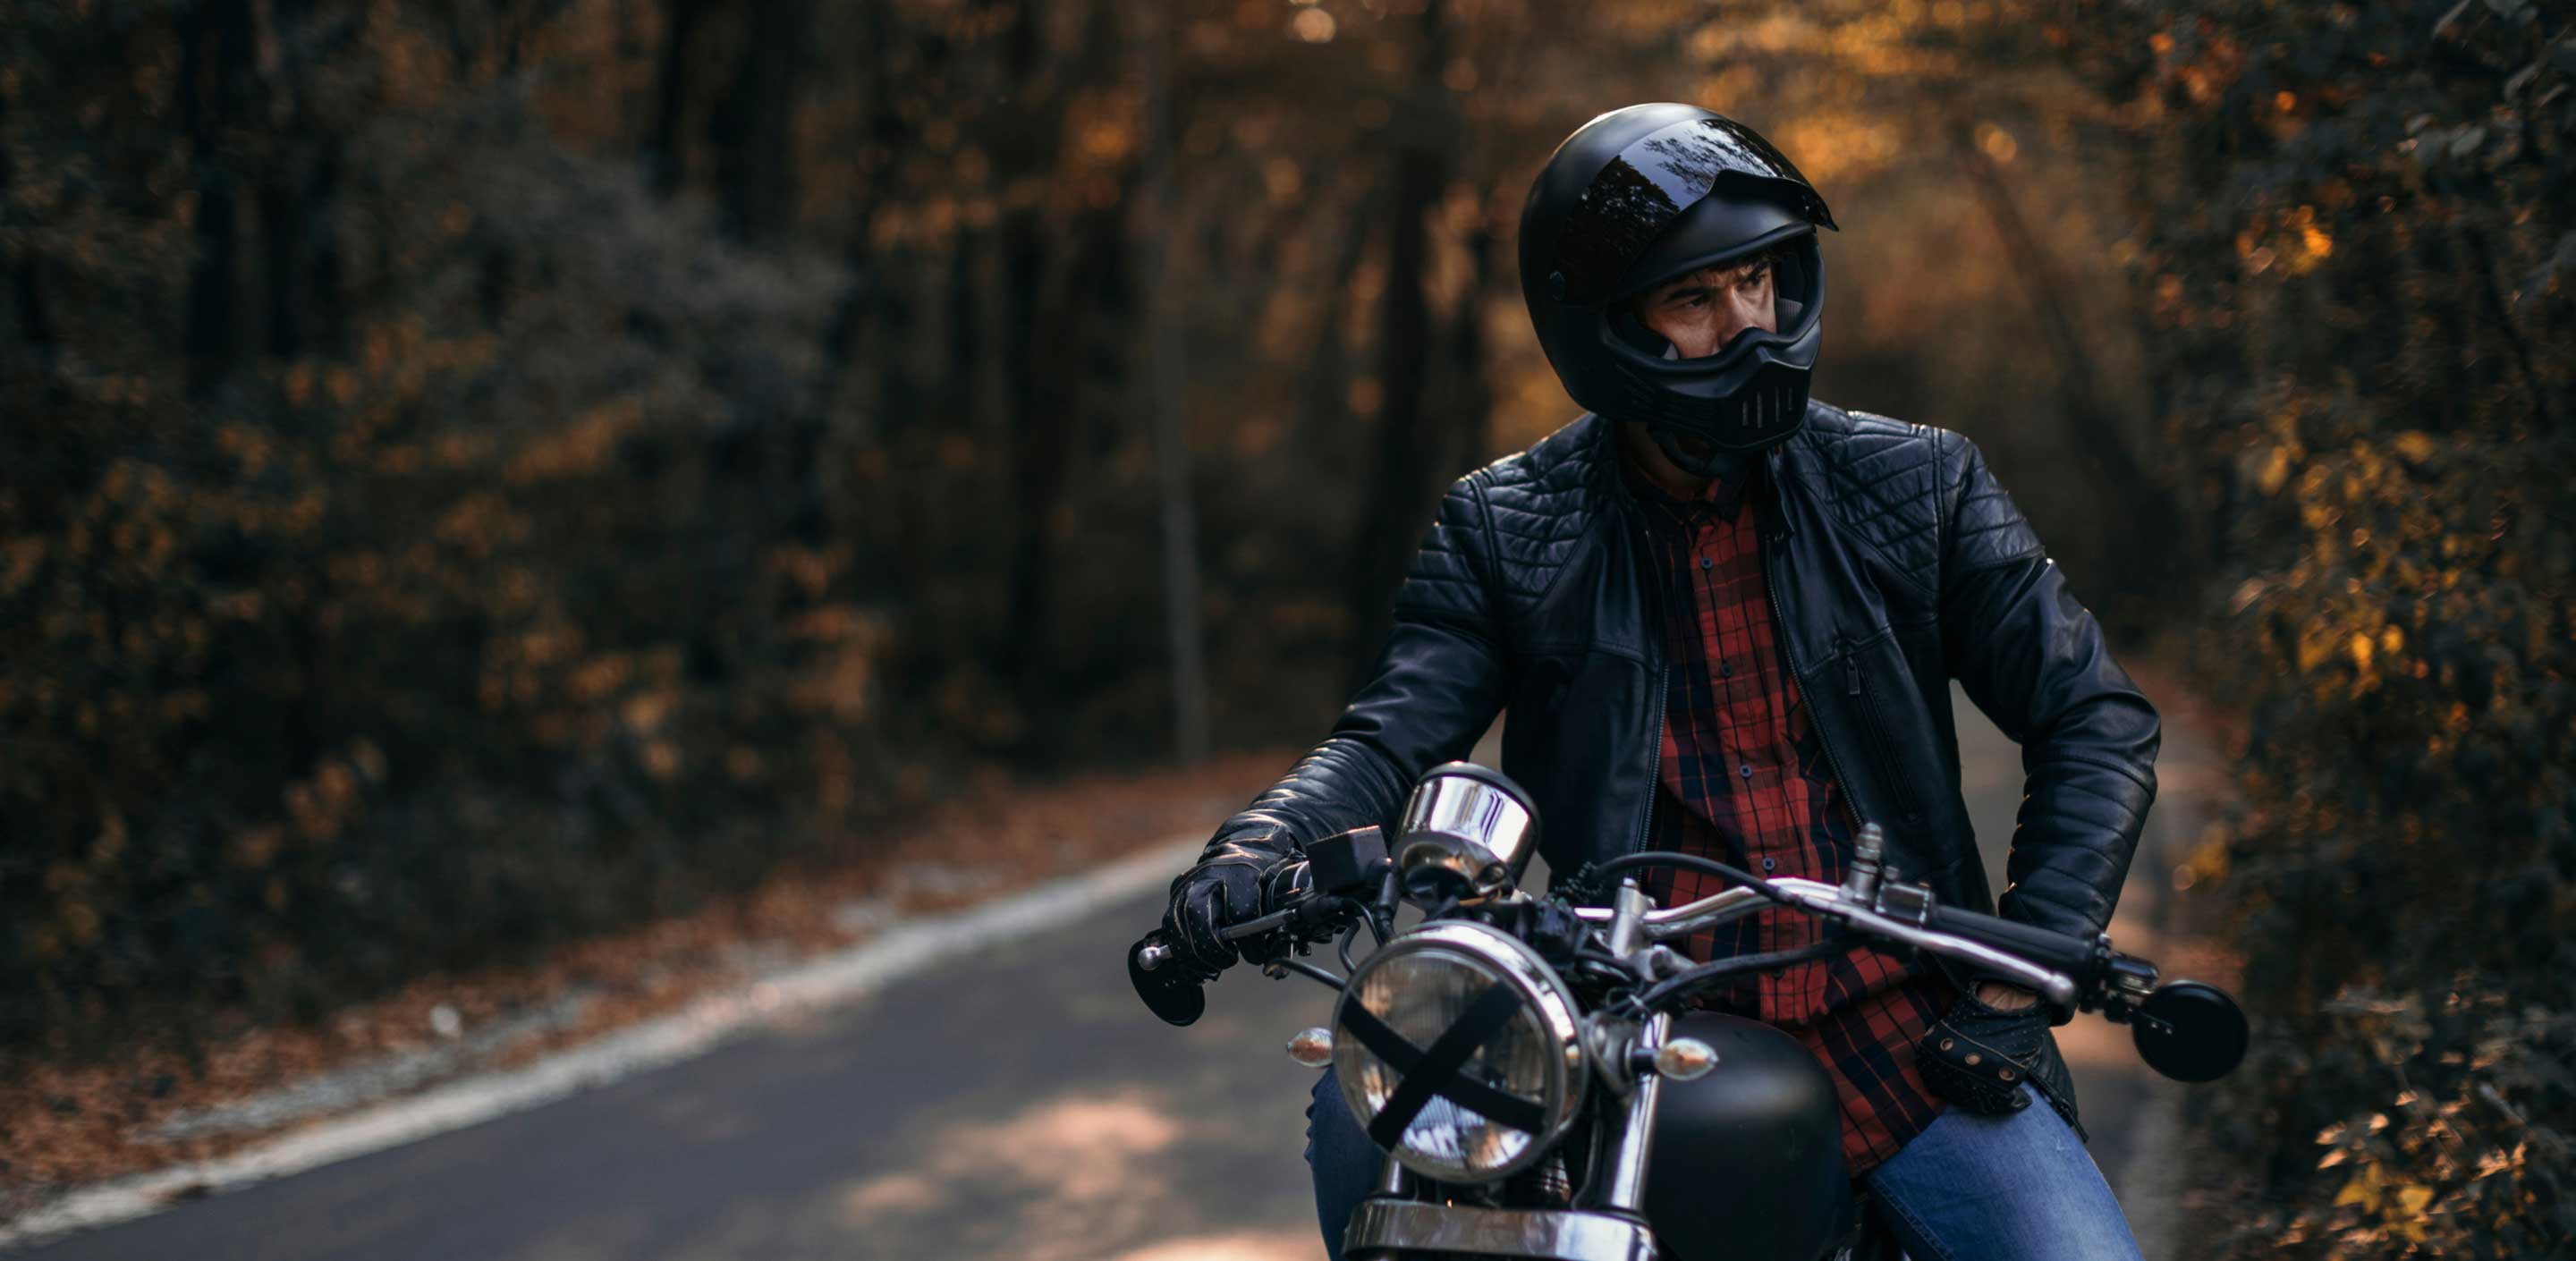 5 Ways to Style a Cafe Racer Jacket